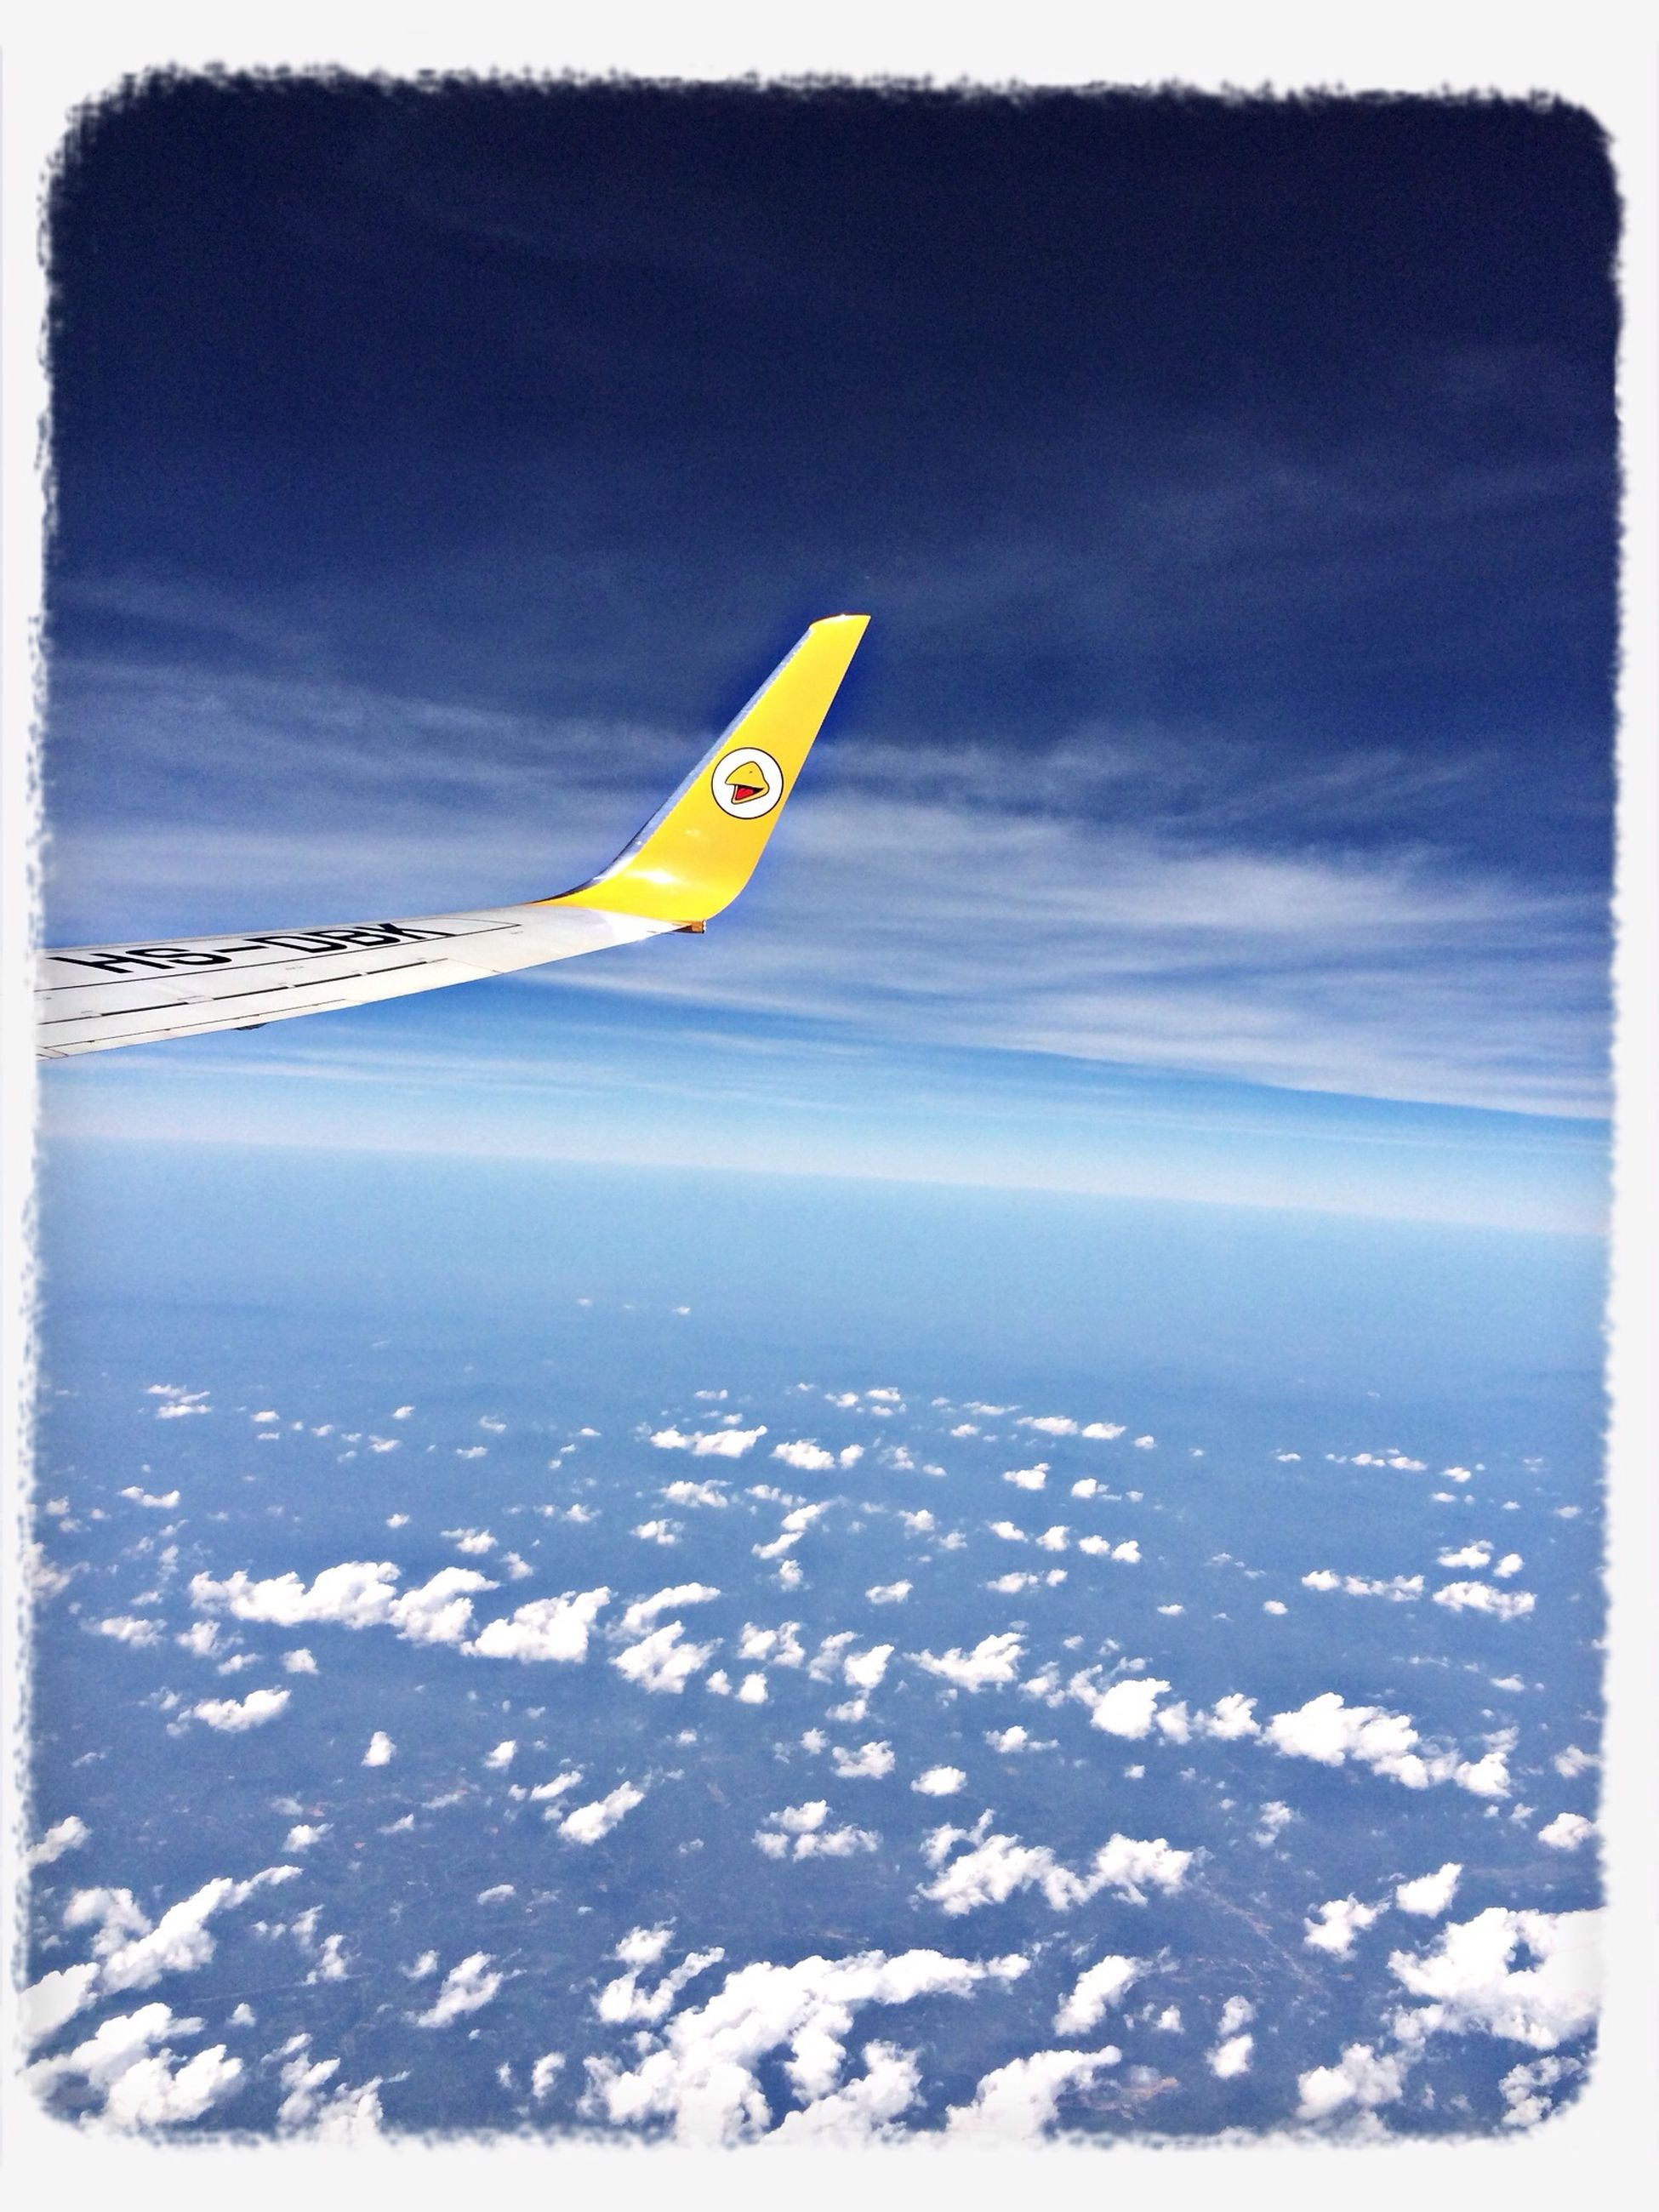 flying, transportation, transfer print, air vehicle, airplane, mode of transport, mid-air, sky, aircraft wing, scenics, aerial view, beauty in nature, auto post production filter, travel, nature, landscape, tranquil scene, journey, cloud - sky, tranquility